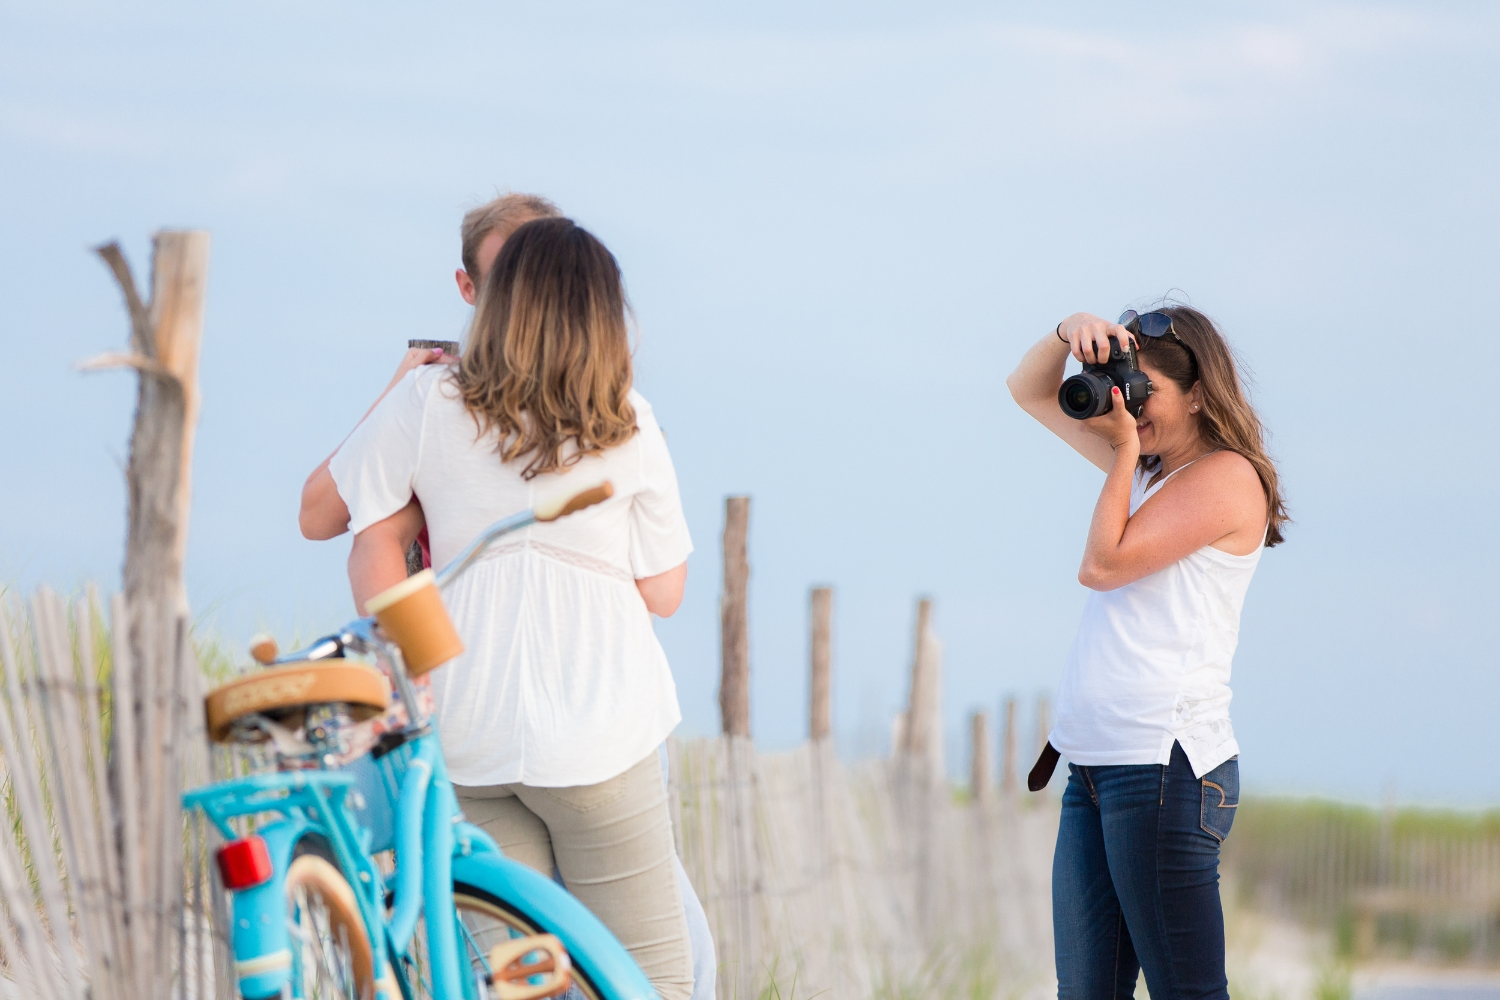 Copy of Copy of seaside-heights-engagement-photographer-jacnjules-photo.jpg